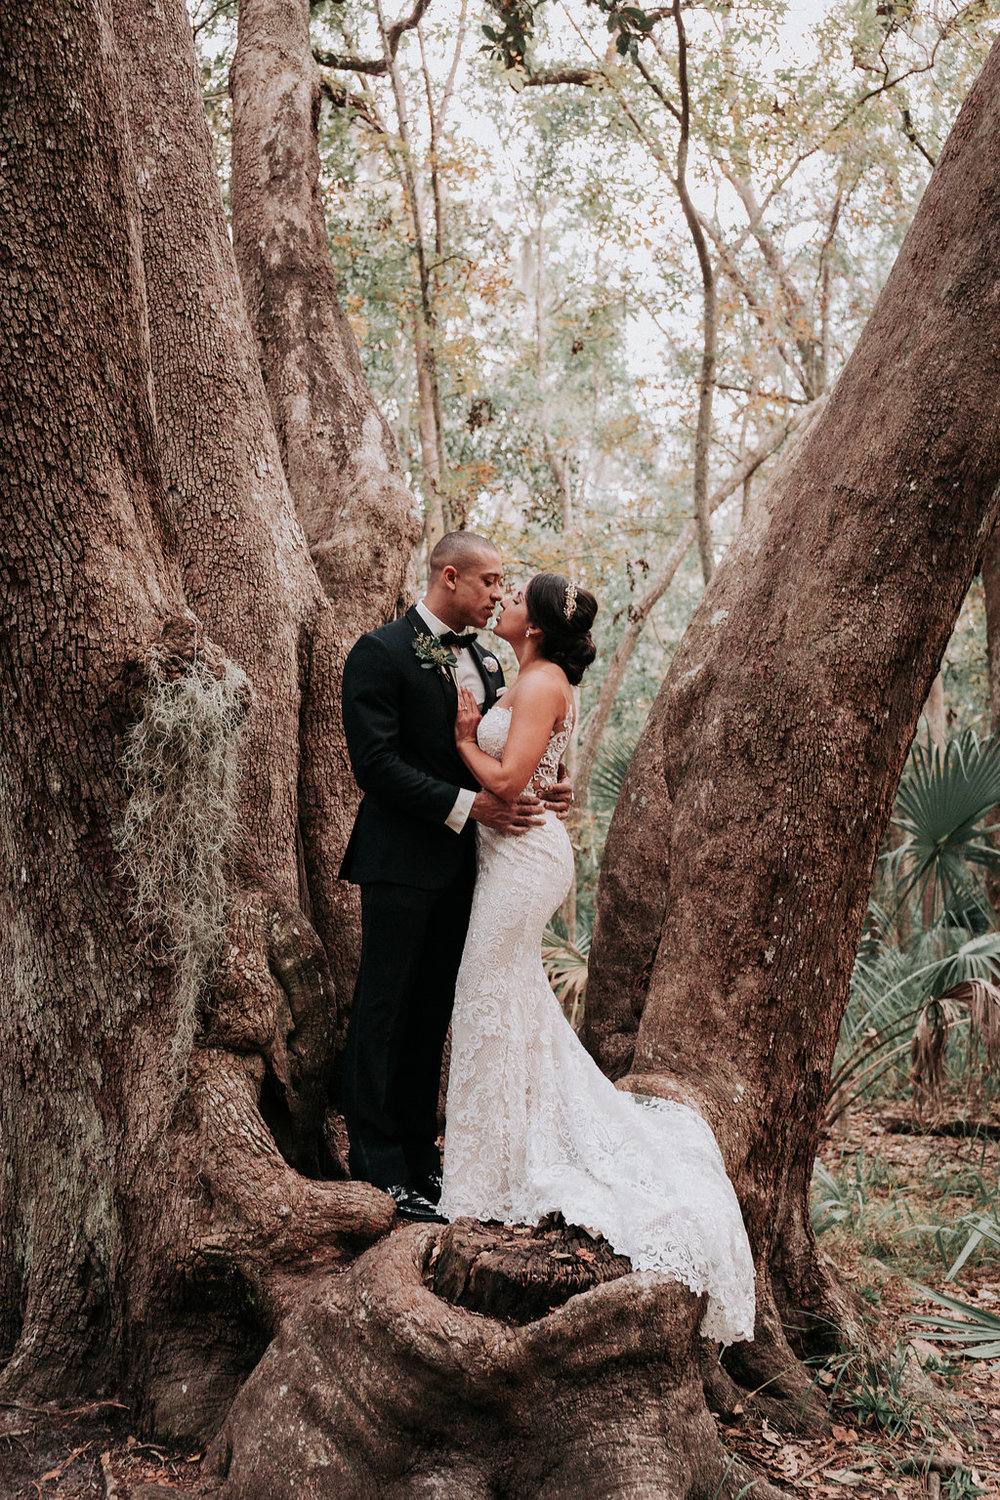 ivory-and-beau-savannah-bridal-shop-ivory-and-beau-couple-caitlin-and-tim-wormsloe-wedding-savannah-wedding-florist-house-of-ivory-photography-28.jpg